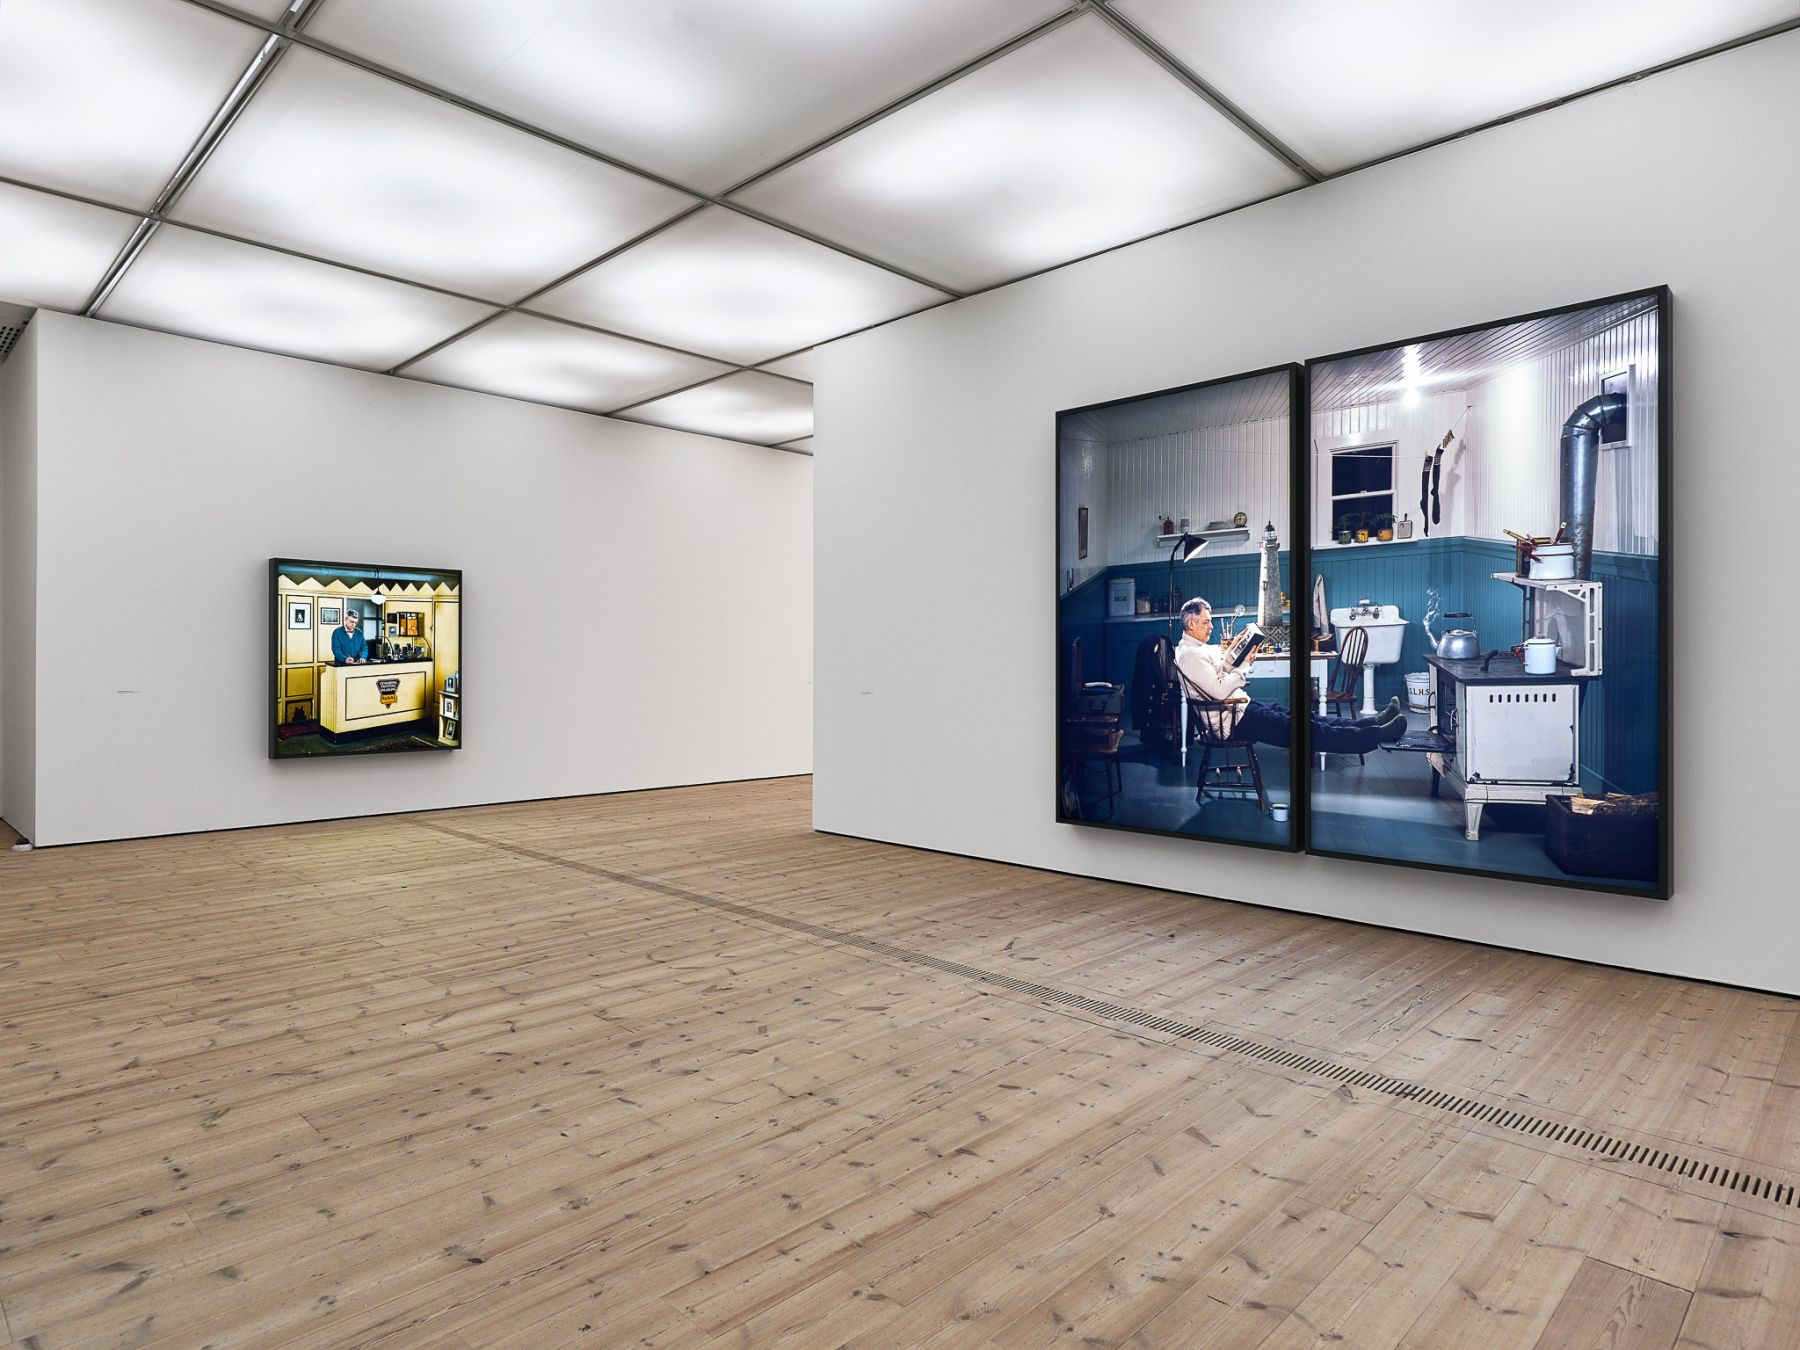 Installation view: Rodney Graham, That's Not Me, 2017, BALTIC Centre for Contemporary Art, Gateshead